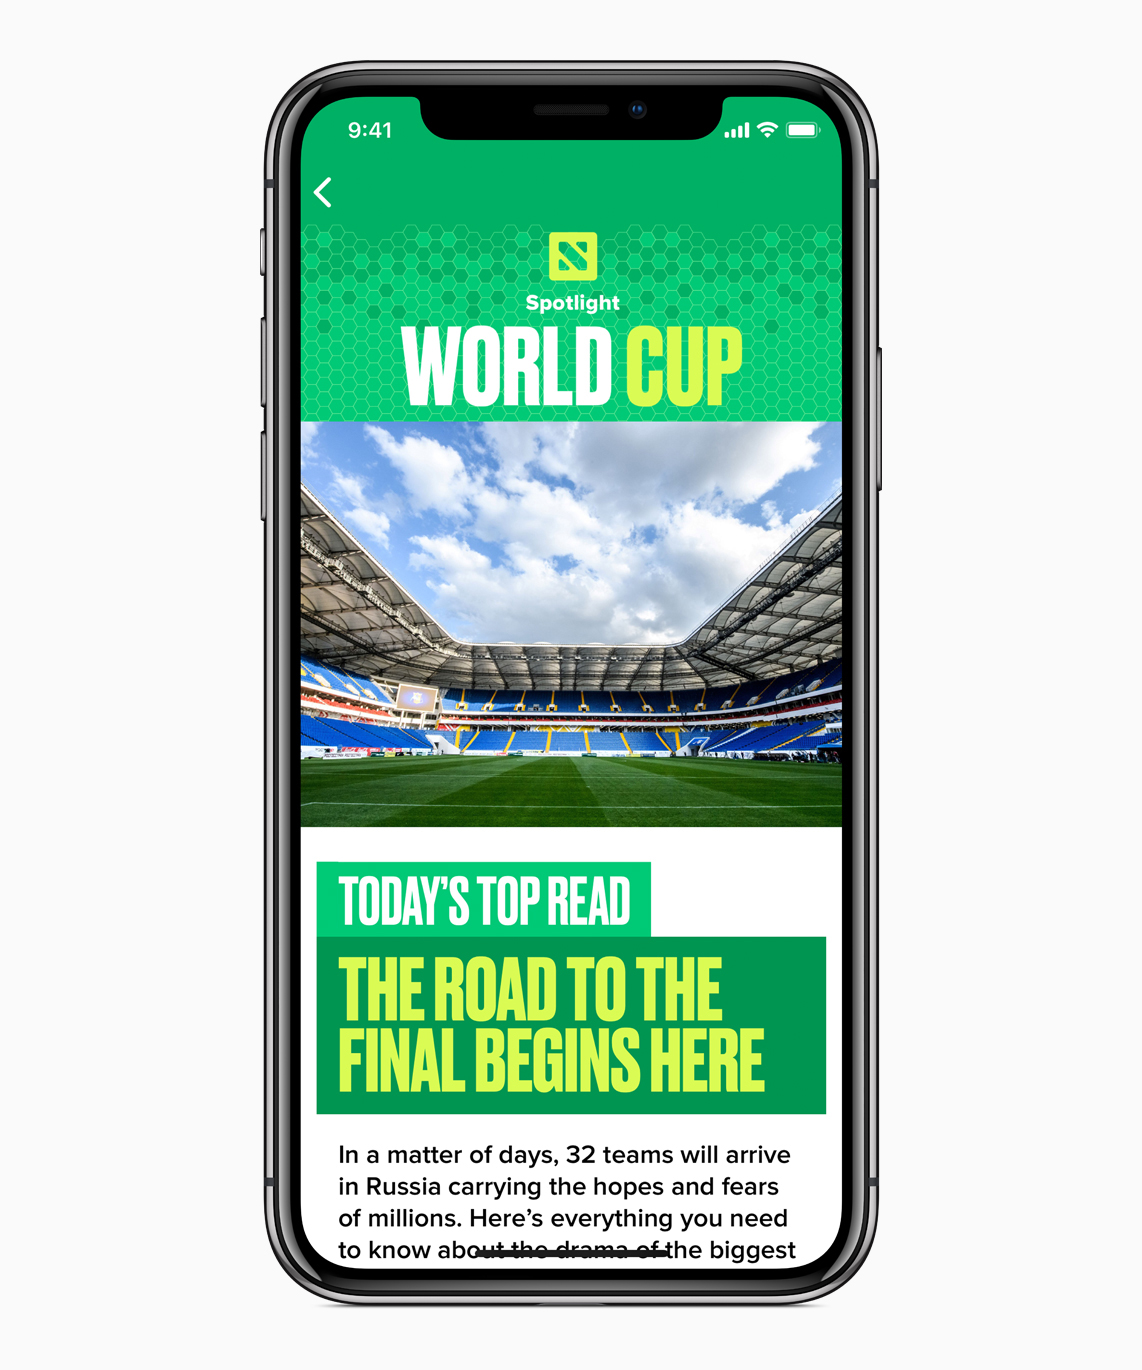 World Cup Content Coming to Siri, iOS apps, Apple TV, iBooks, and More